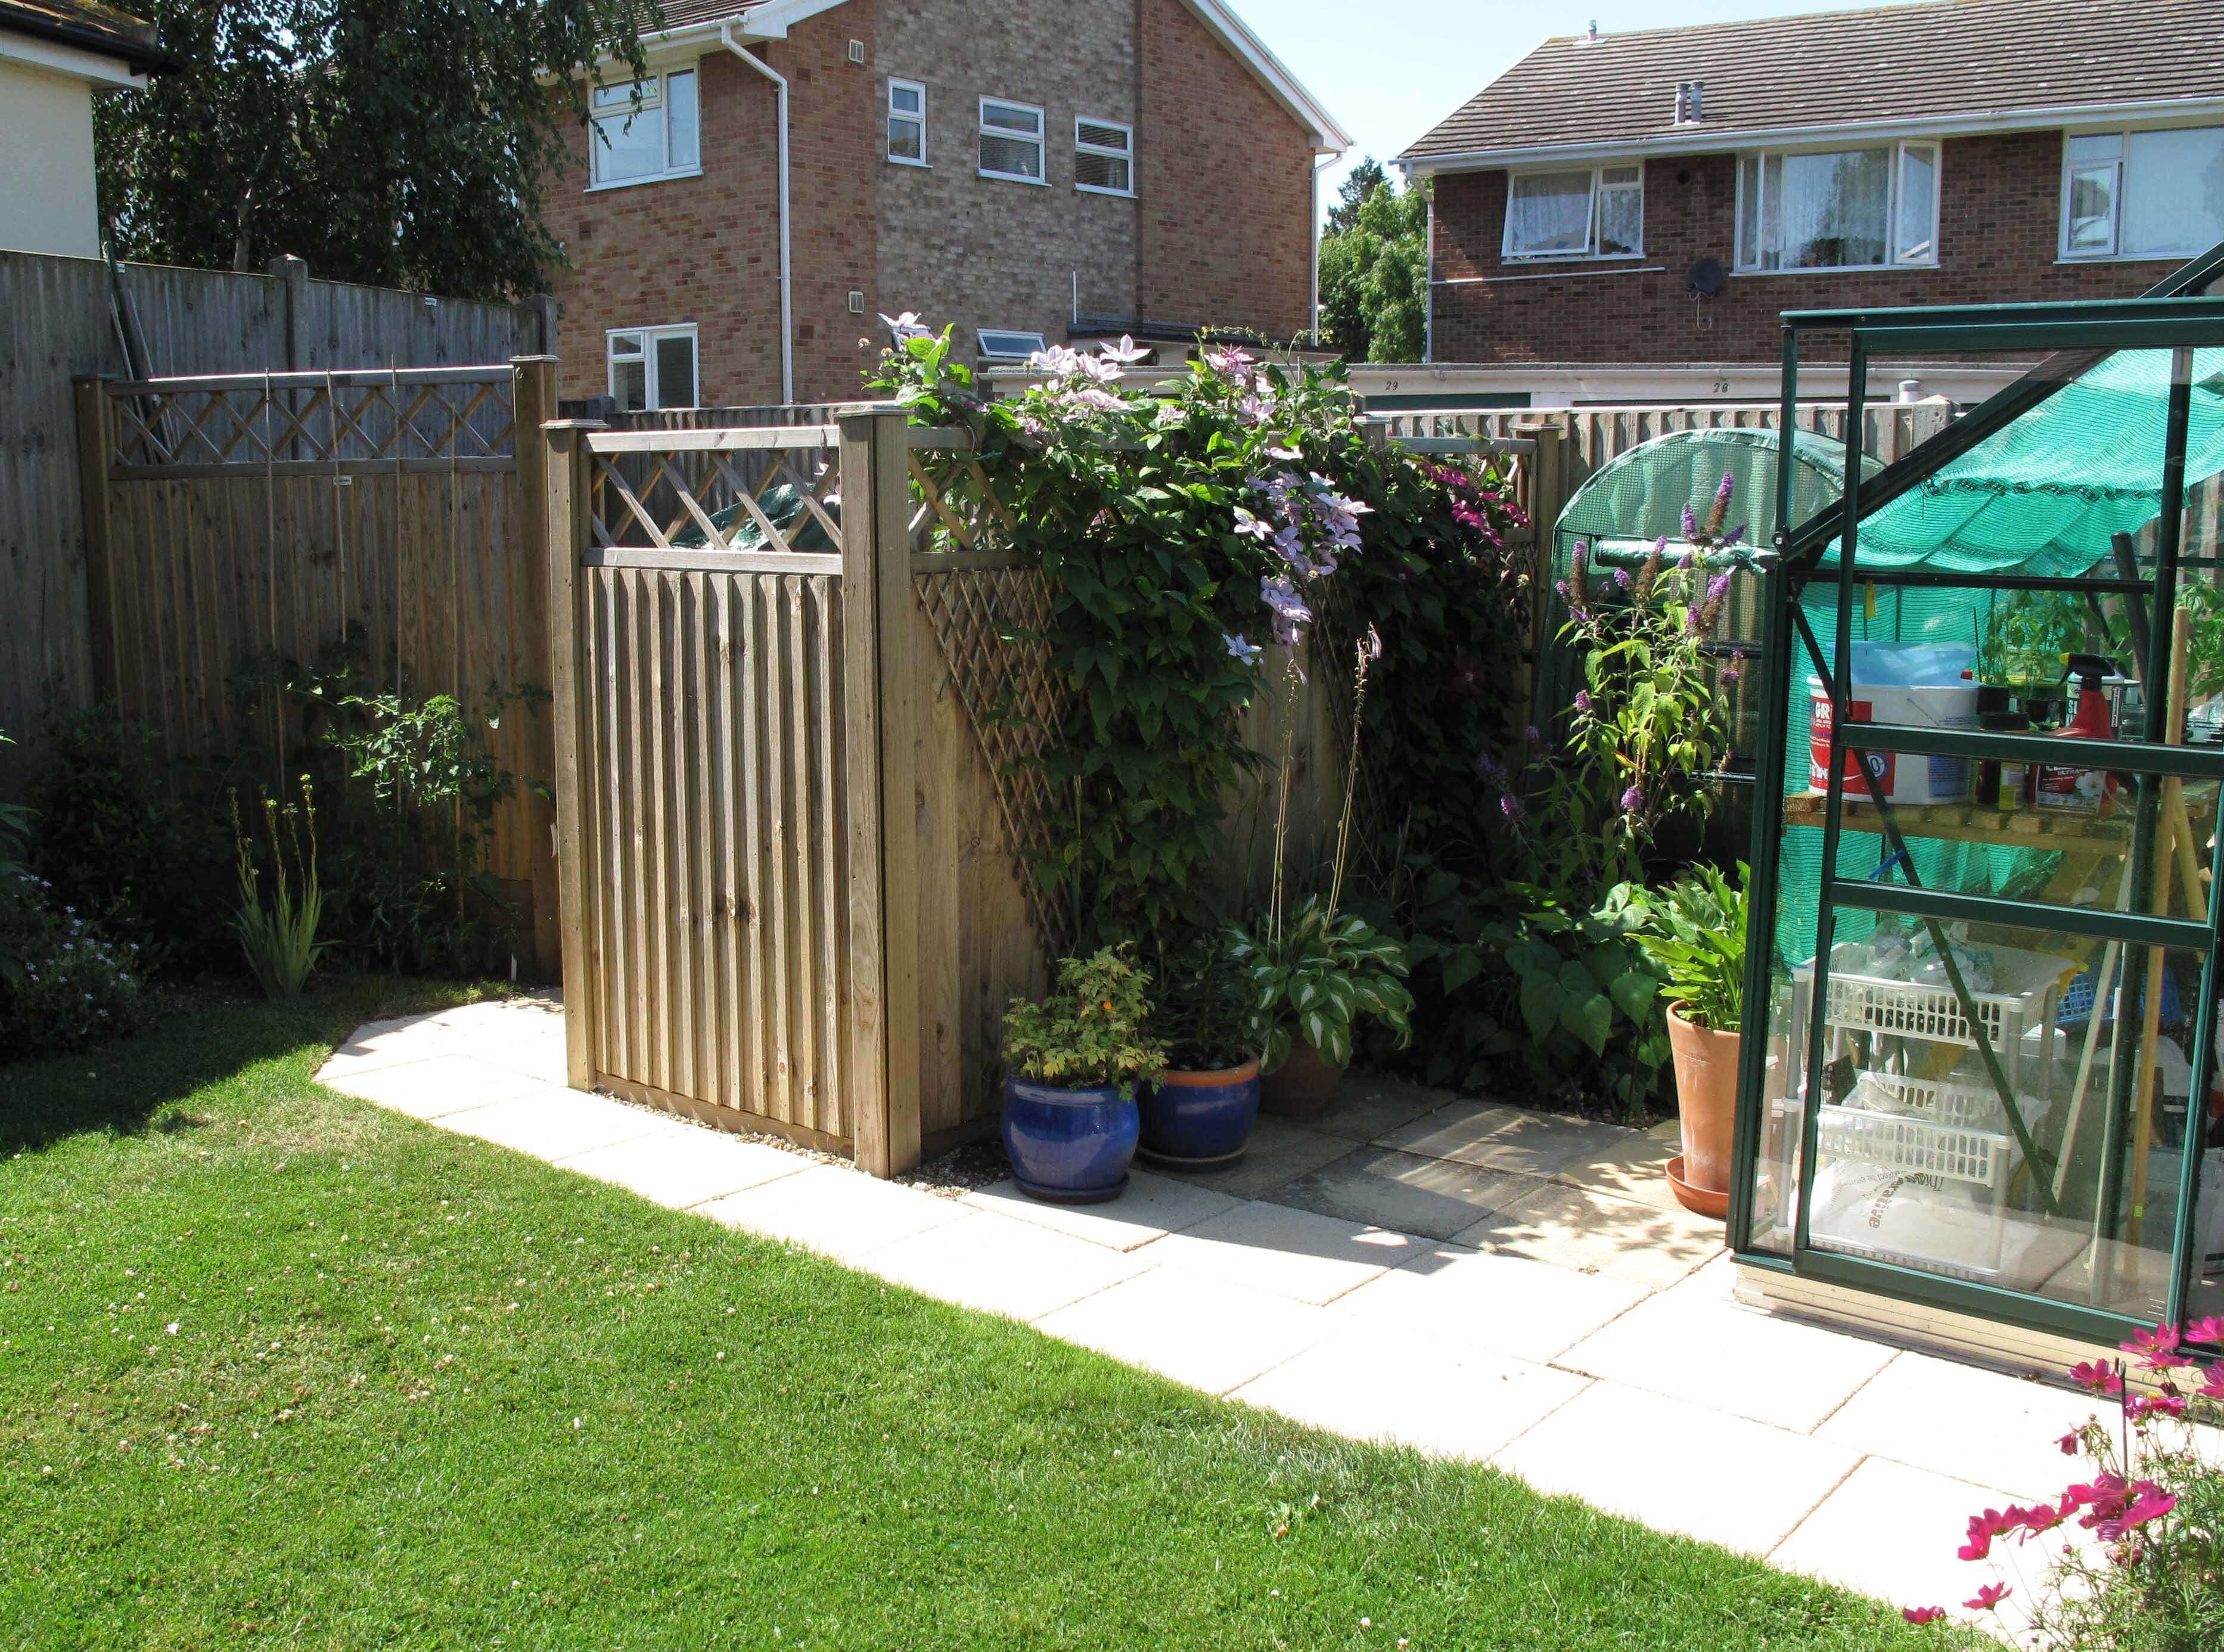 Garden storage space from fencing